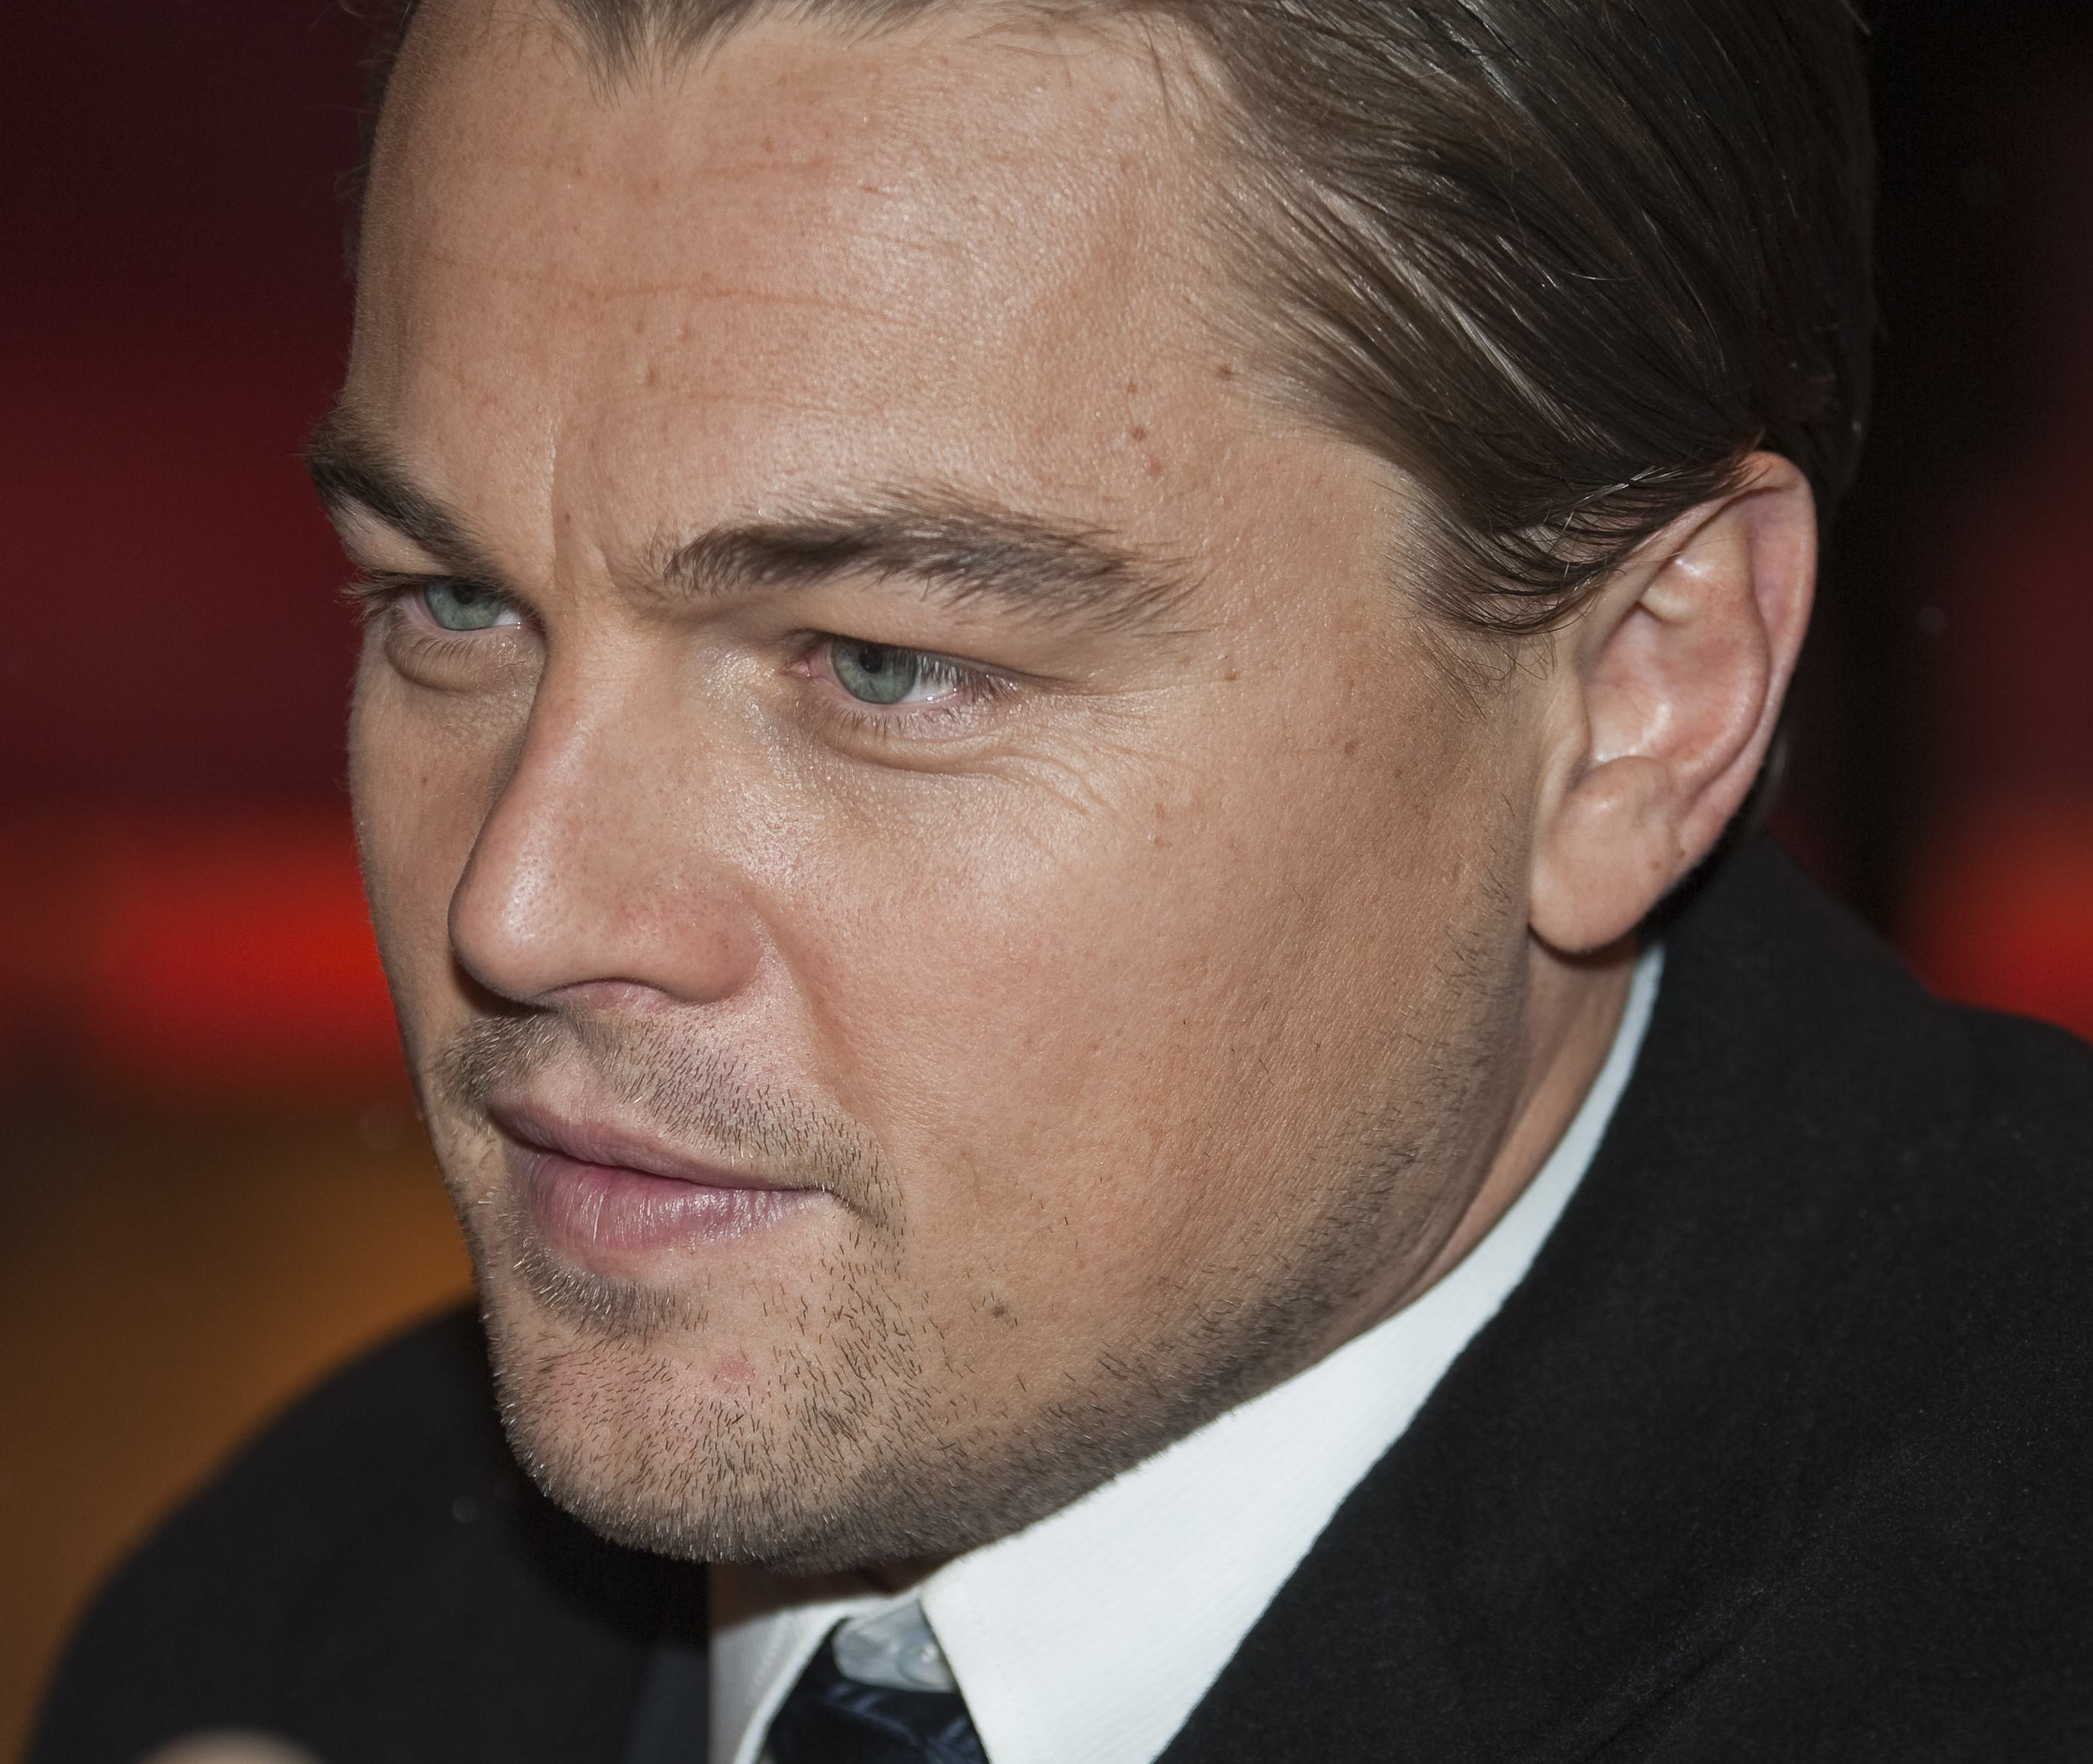 Leonardo DiCaprio Berlin Film Festival 2010 2 cropped Leonardo DiCaprio Is Finally Getting An Oscar, Sort Of